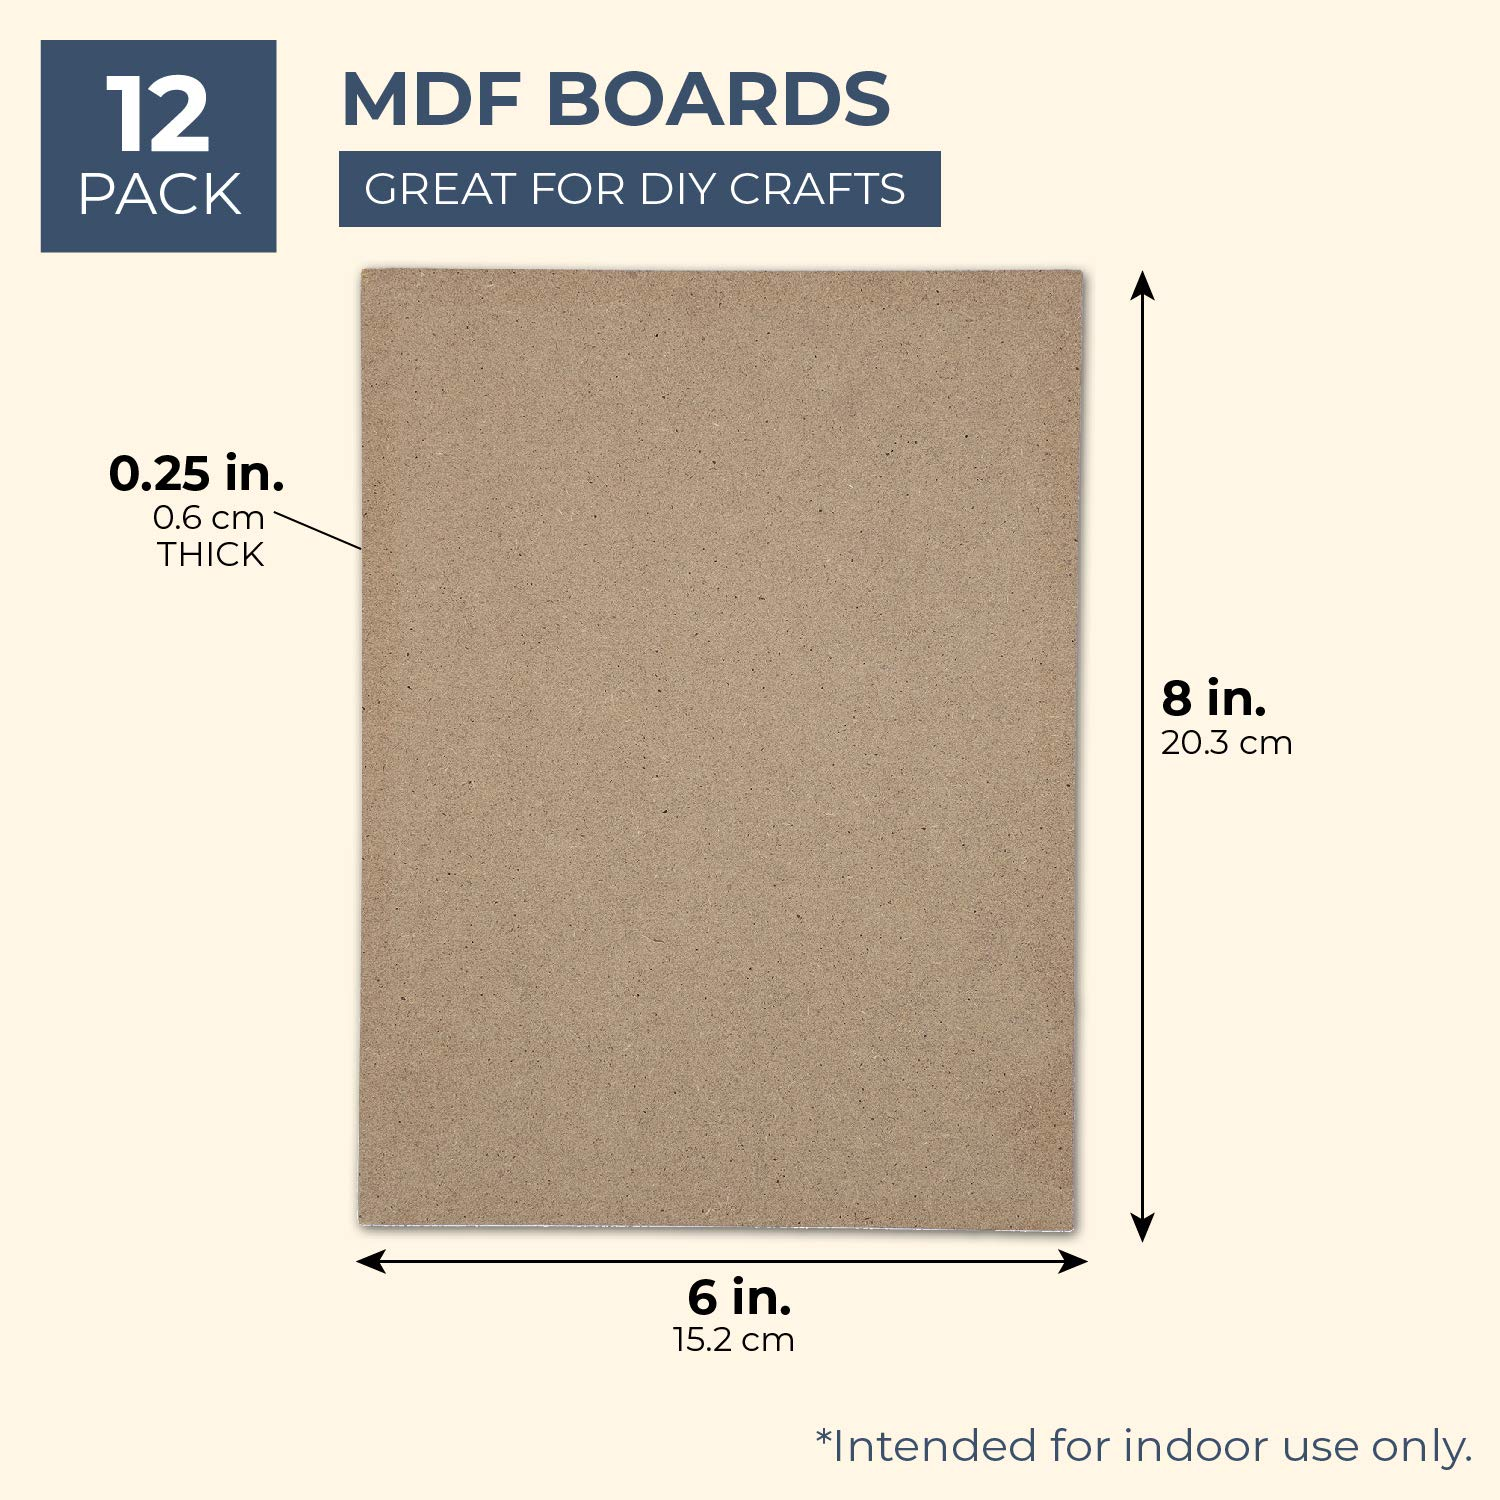 12 Pack 6 x 8 Inches Bright Creations MDF Board